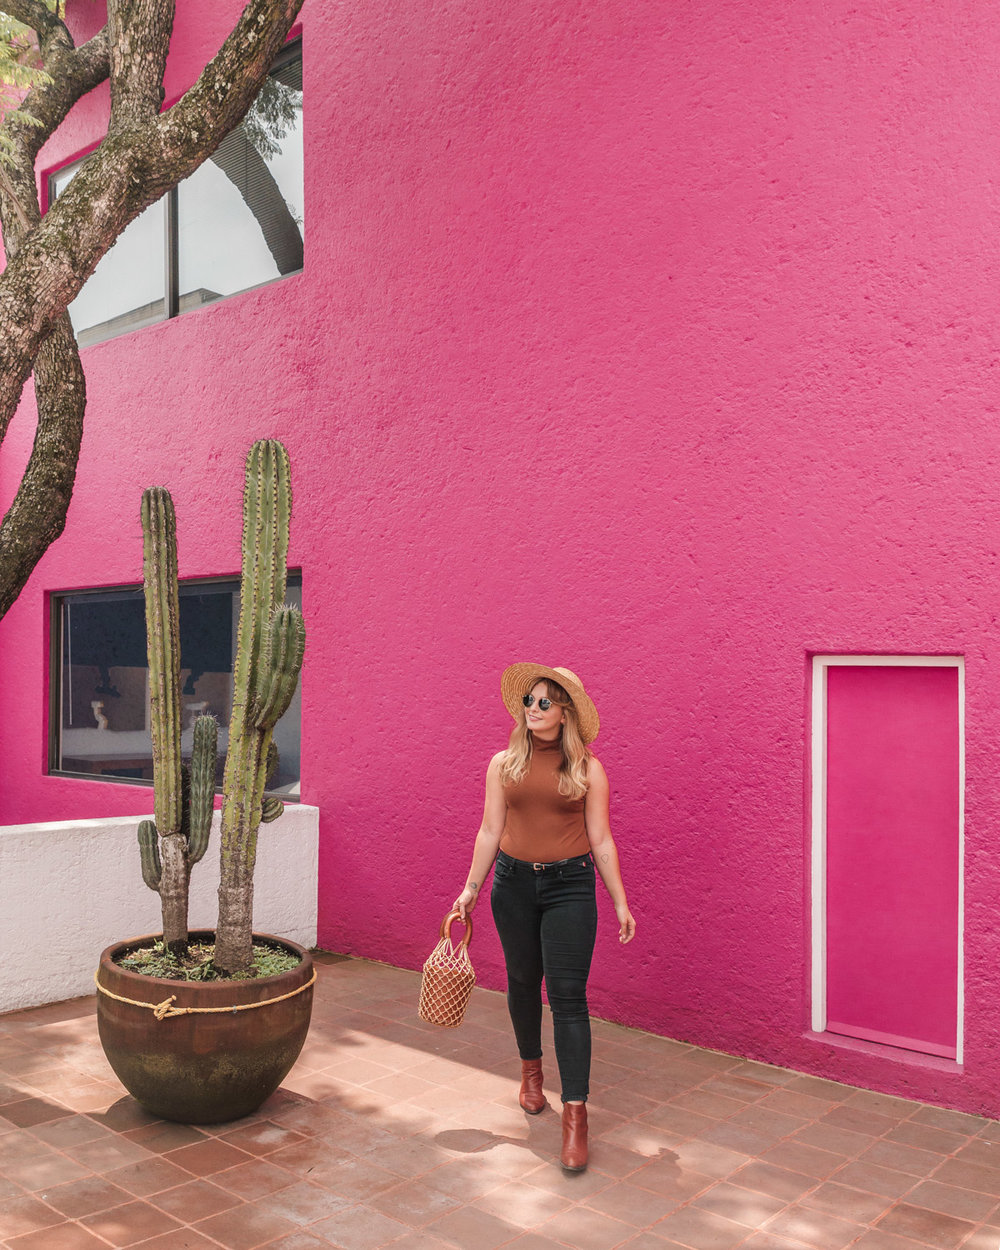 Pink walls at Casa Gilardi // The Most Instagrammable Spots in Mexico City #readysetjetset